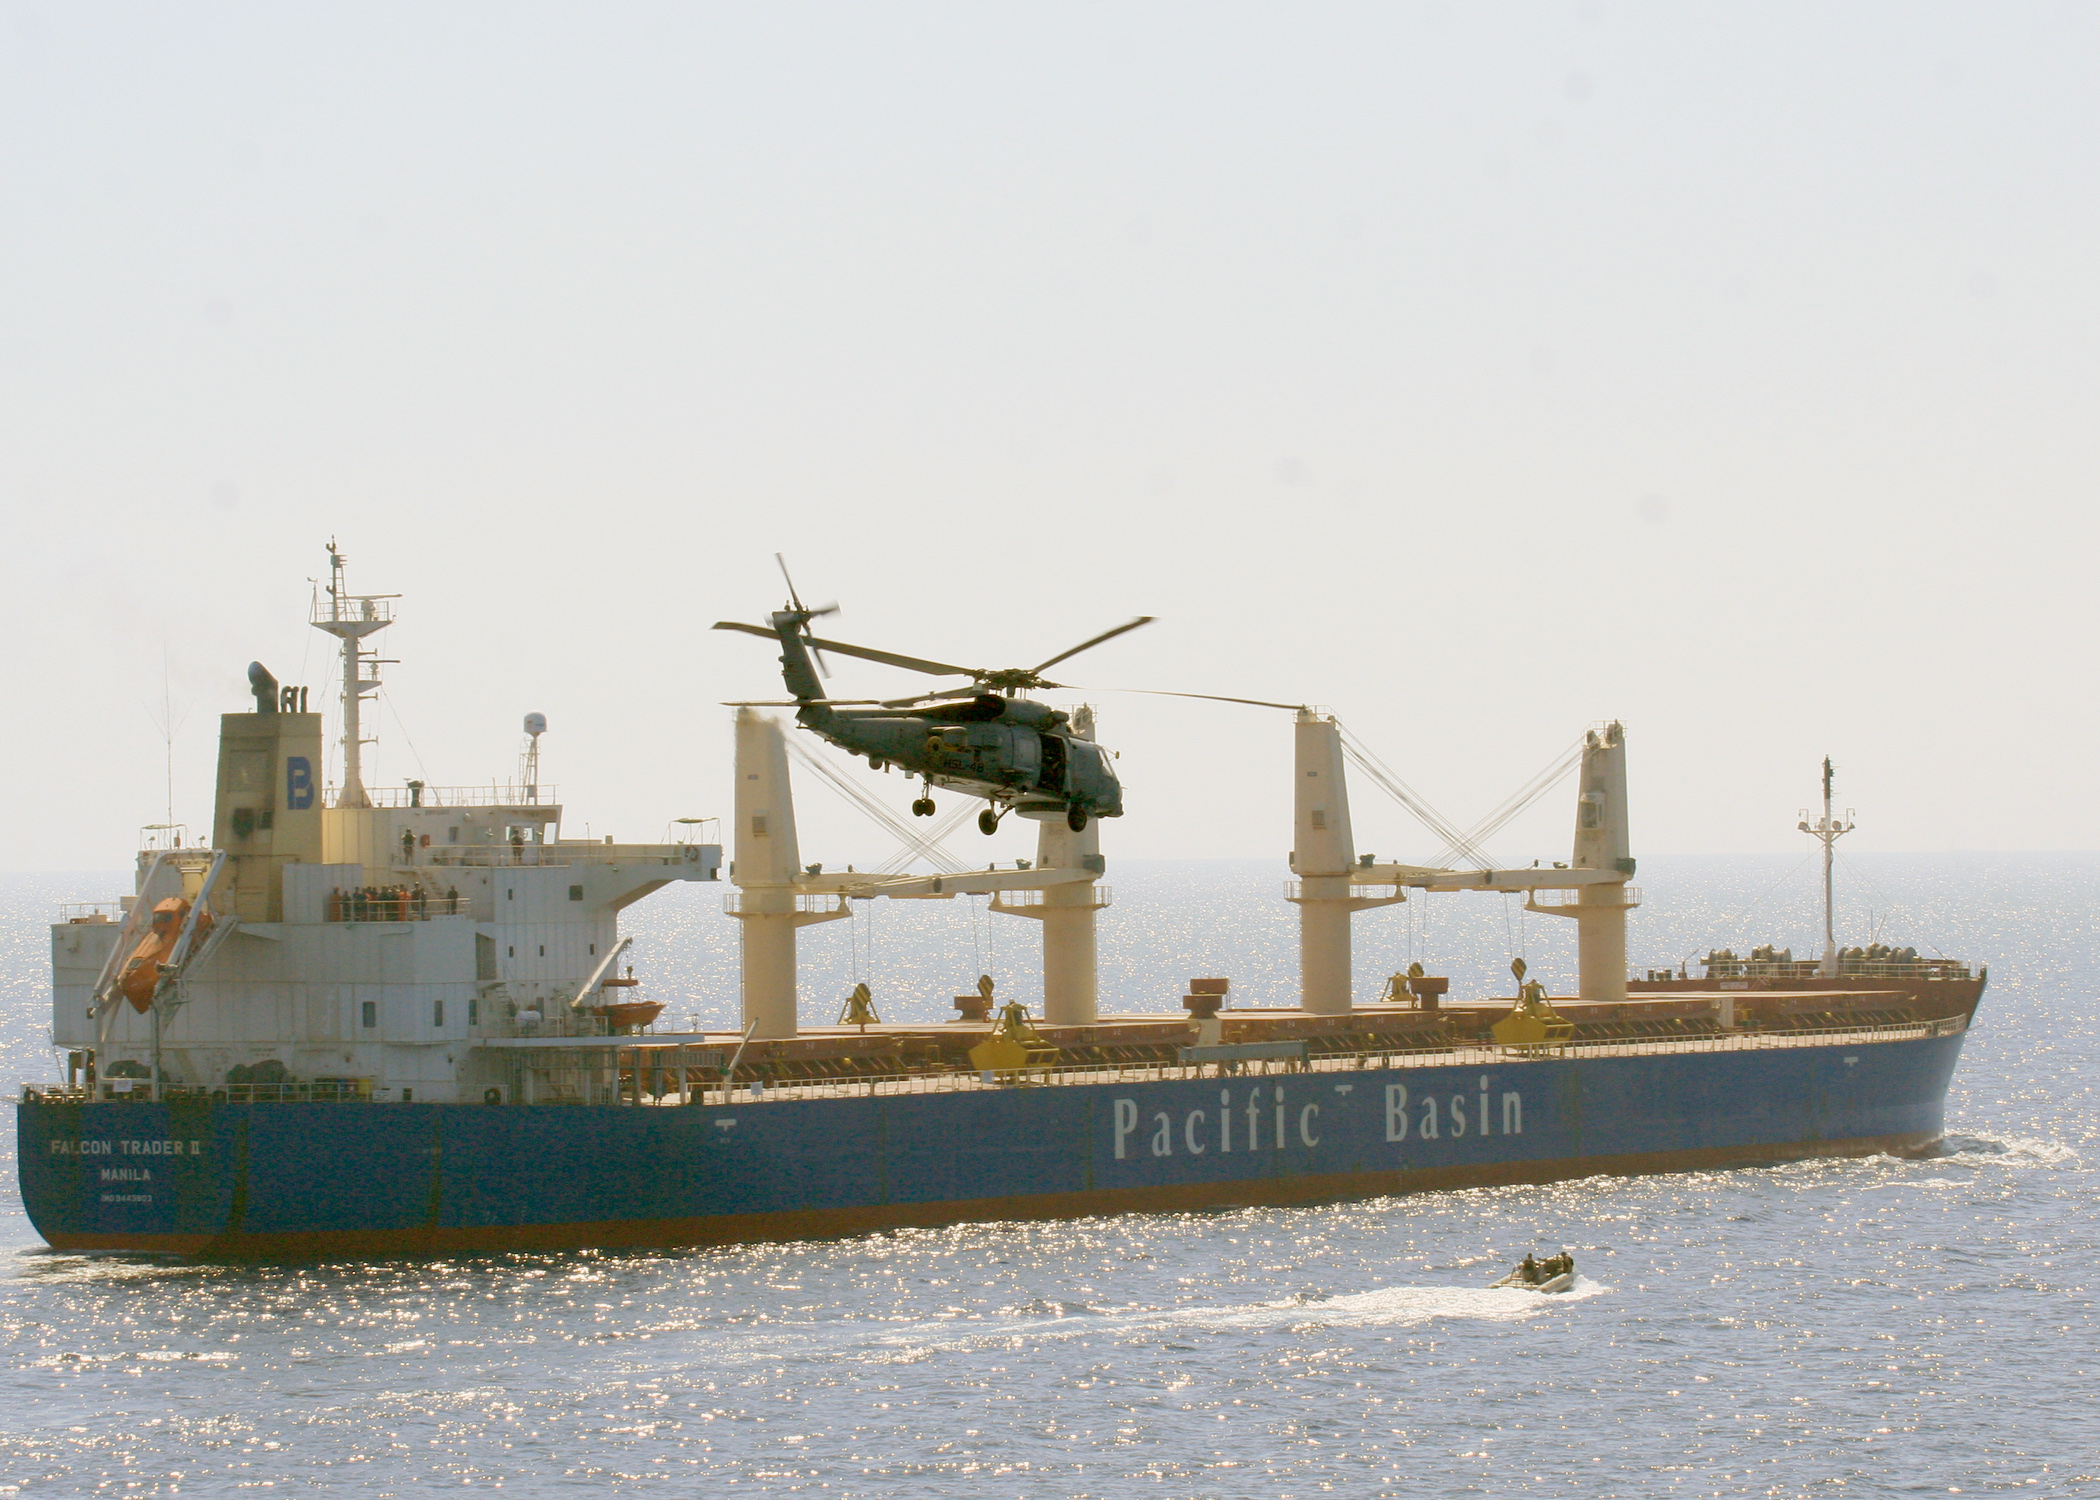 An SH-60B Sea Hawk helicopters from Helicopter Anti-Submarine Squadron Light (HSL) 48 embarked aboard the guided-missile cruiser USS Leyte Gulf (CG 55) and a rigid-hull inflatable boat from Leyte Gulf monitor the Philippine-flagged merchant vessel M/V Falcon Trader II, which had sent out a distress call reporting it had been boarded by pirates in March 2011. US Navy photo.